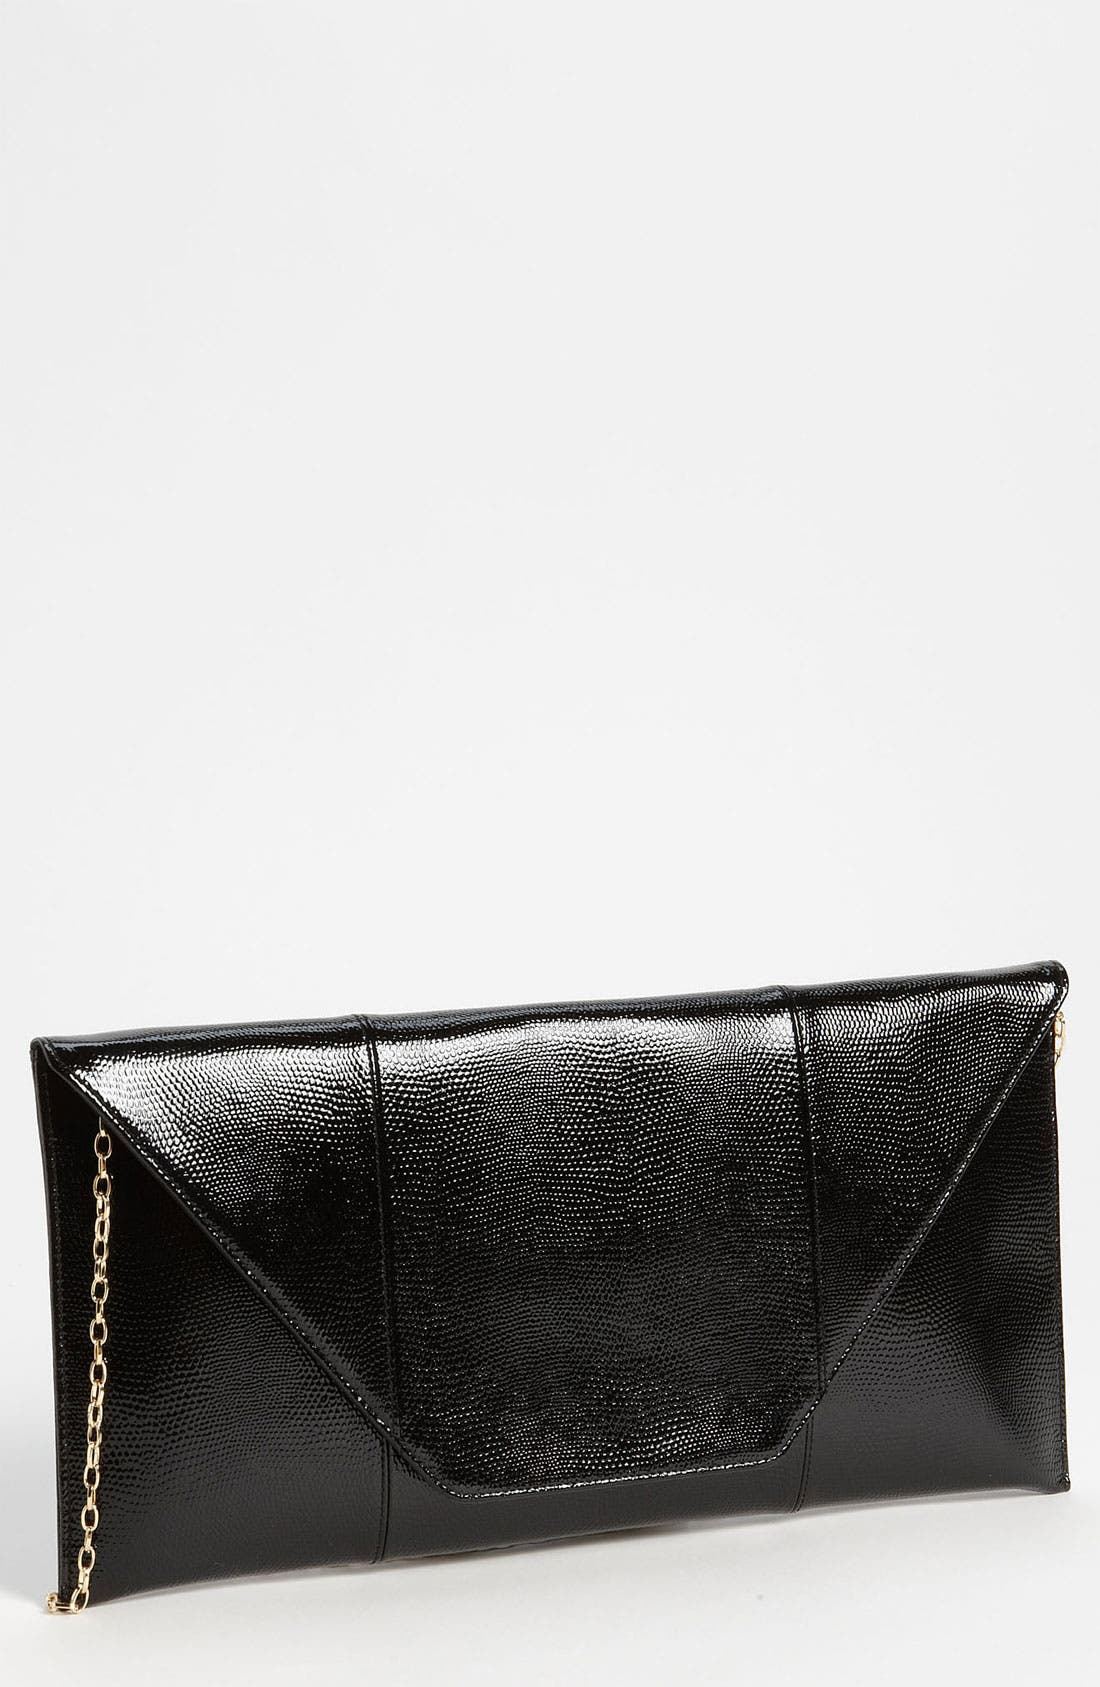 Alternate Image 1 Selected - Halogen Lizard Embossed Patent Leather Flap Clutch